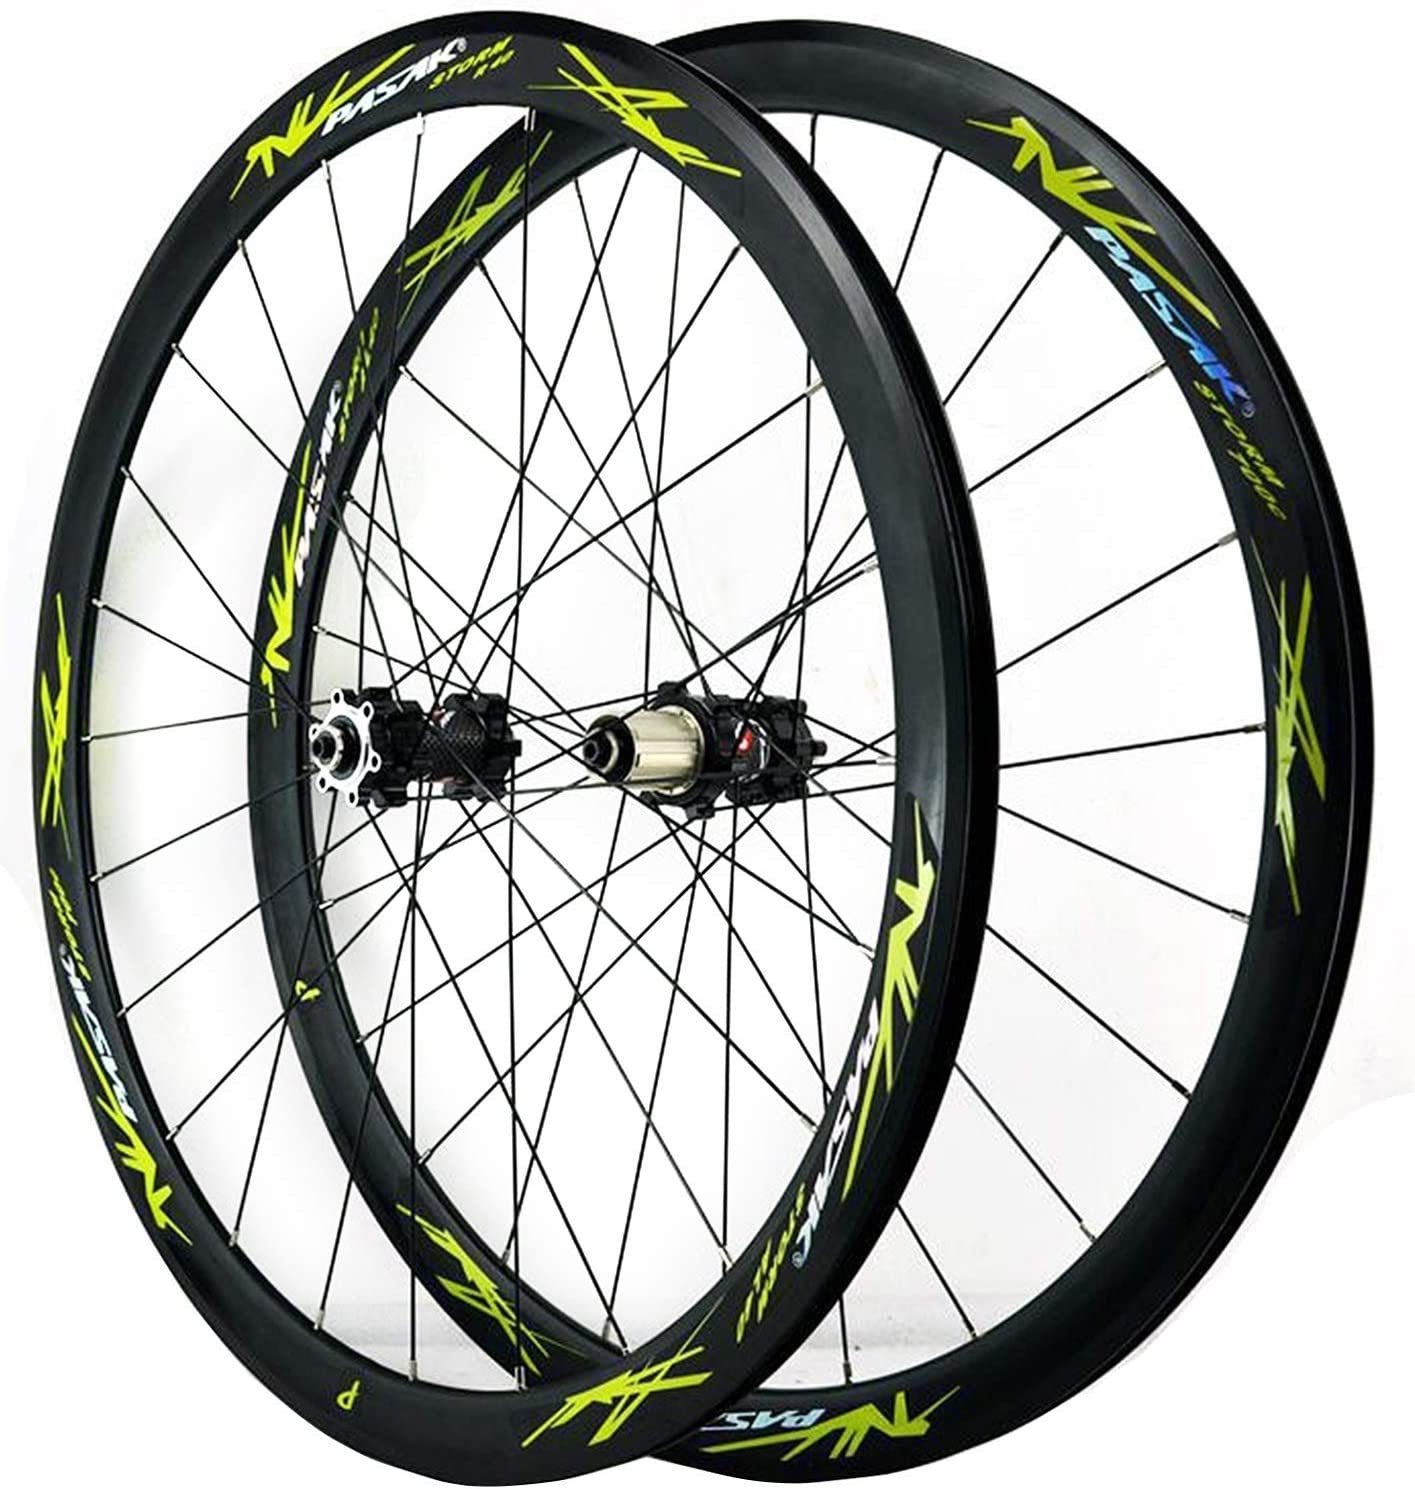 LICHUXIN 700C Road Bike Max 61% OFF Wheelset Cyclocross Disc Whee Brake NEW before selling